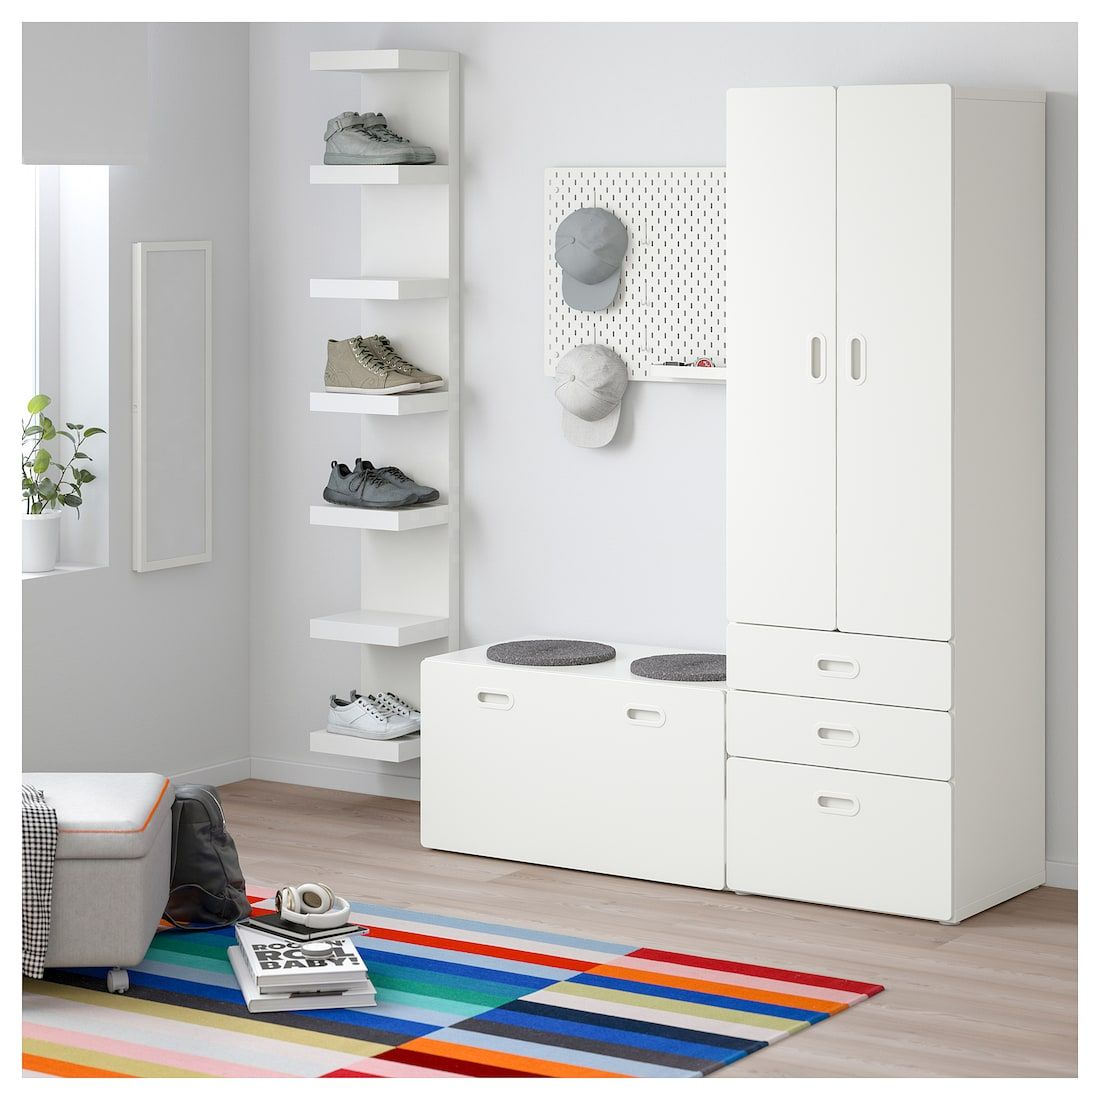 Superb Stuva Fritids Wardrobe With Storage Bench White White Gmtry Best Dining Table And Chair Ideas Images Gmtryco